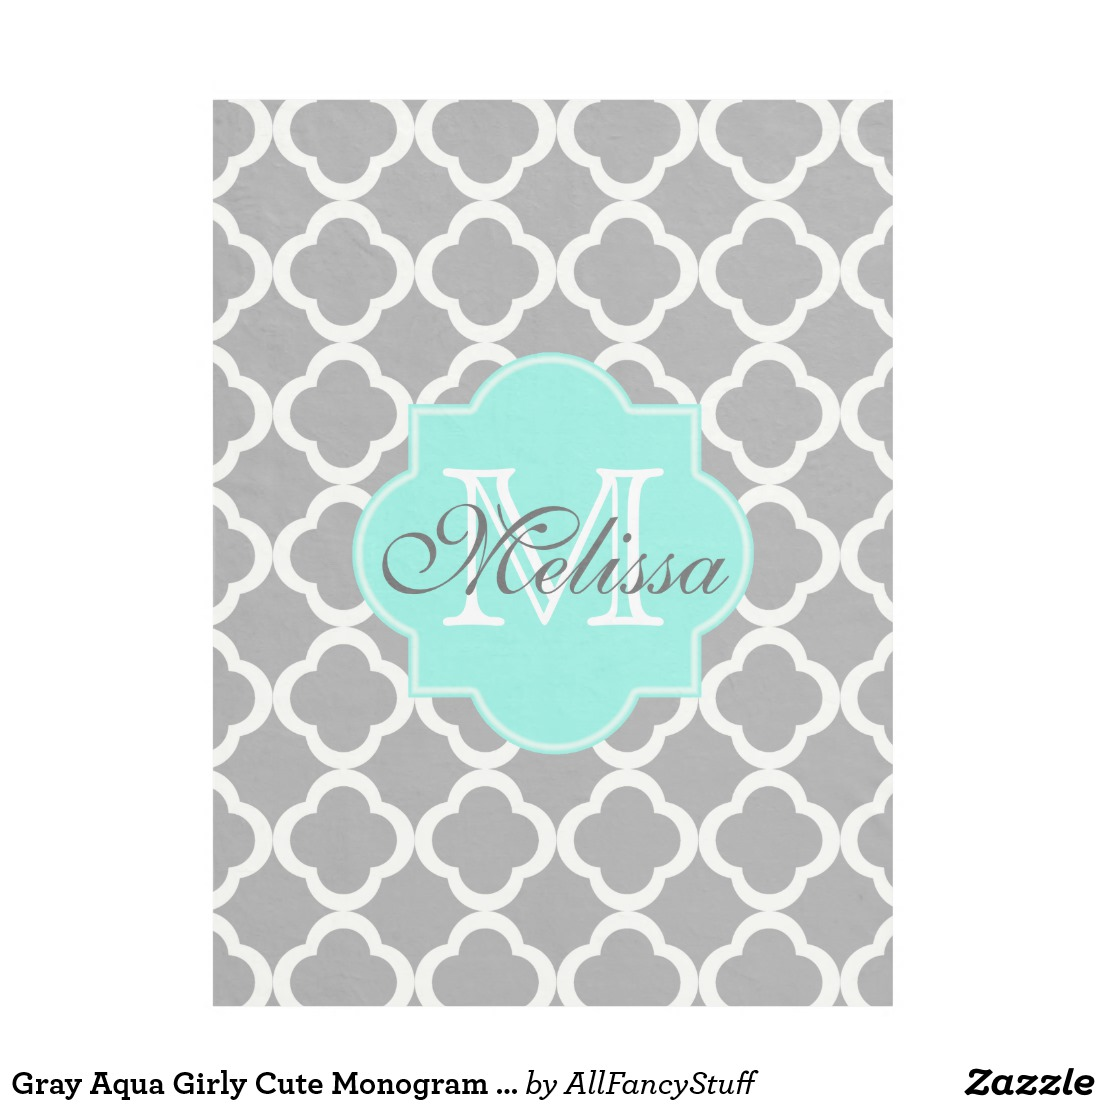 Gray Aqua Girly Cute Monogram Quatrefoil Pattern Fleece Blanket Image